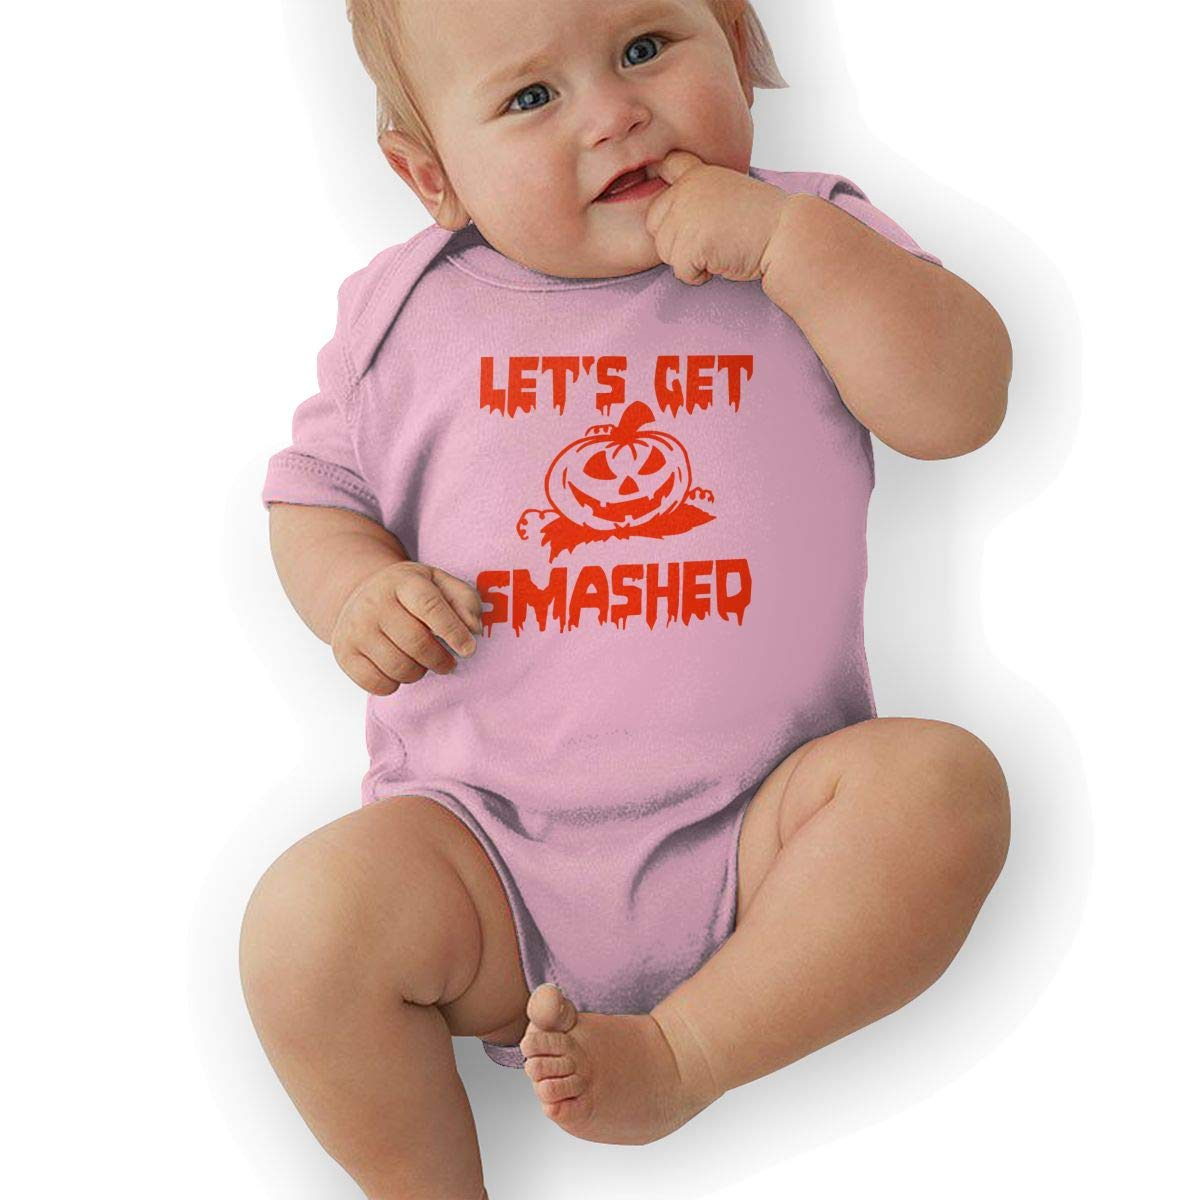 Newborn Baby Girls Bodysuit Short-Sleeve Onesie Lets Get Smashed Print Rompers Summer Pajamas